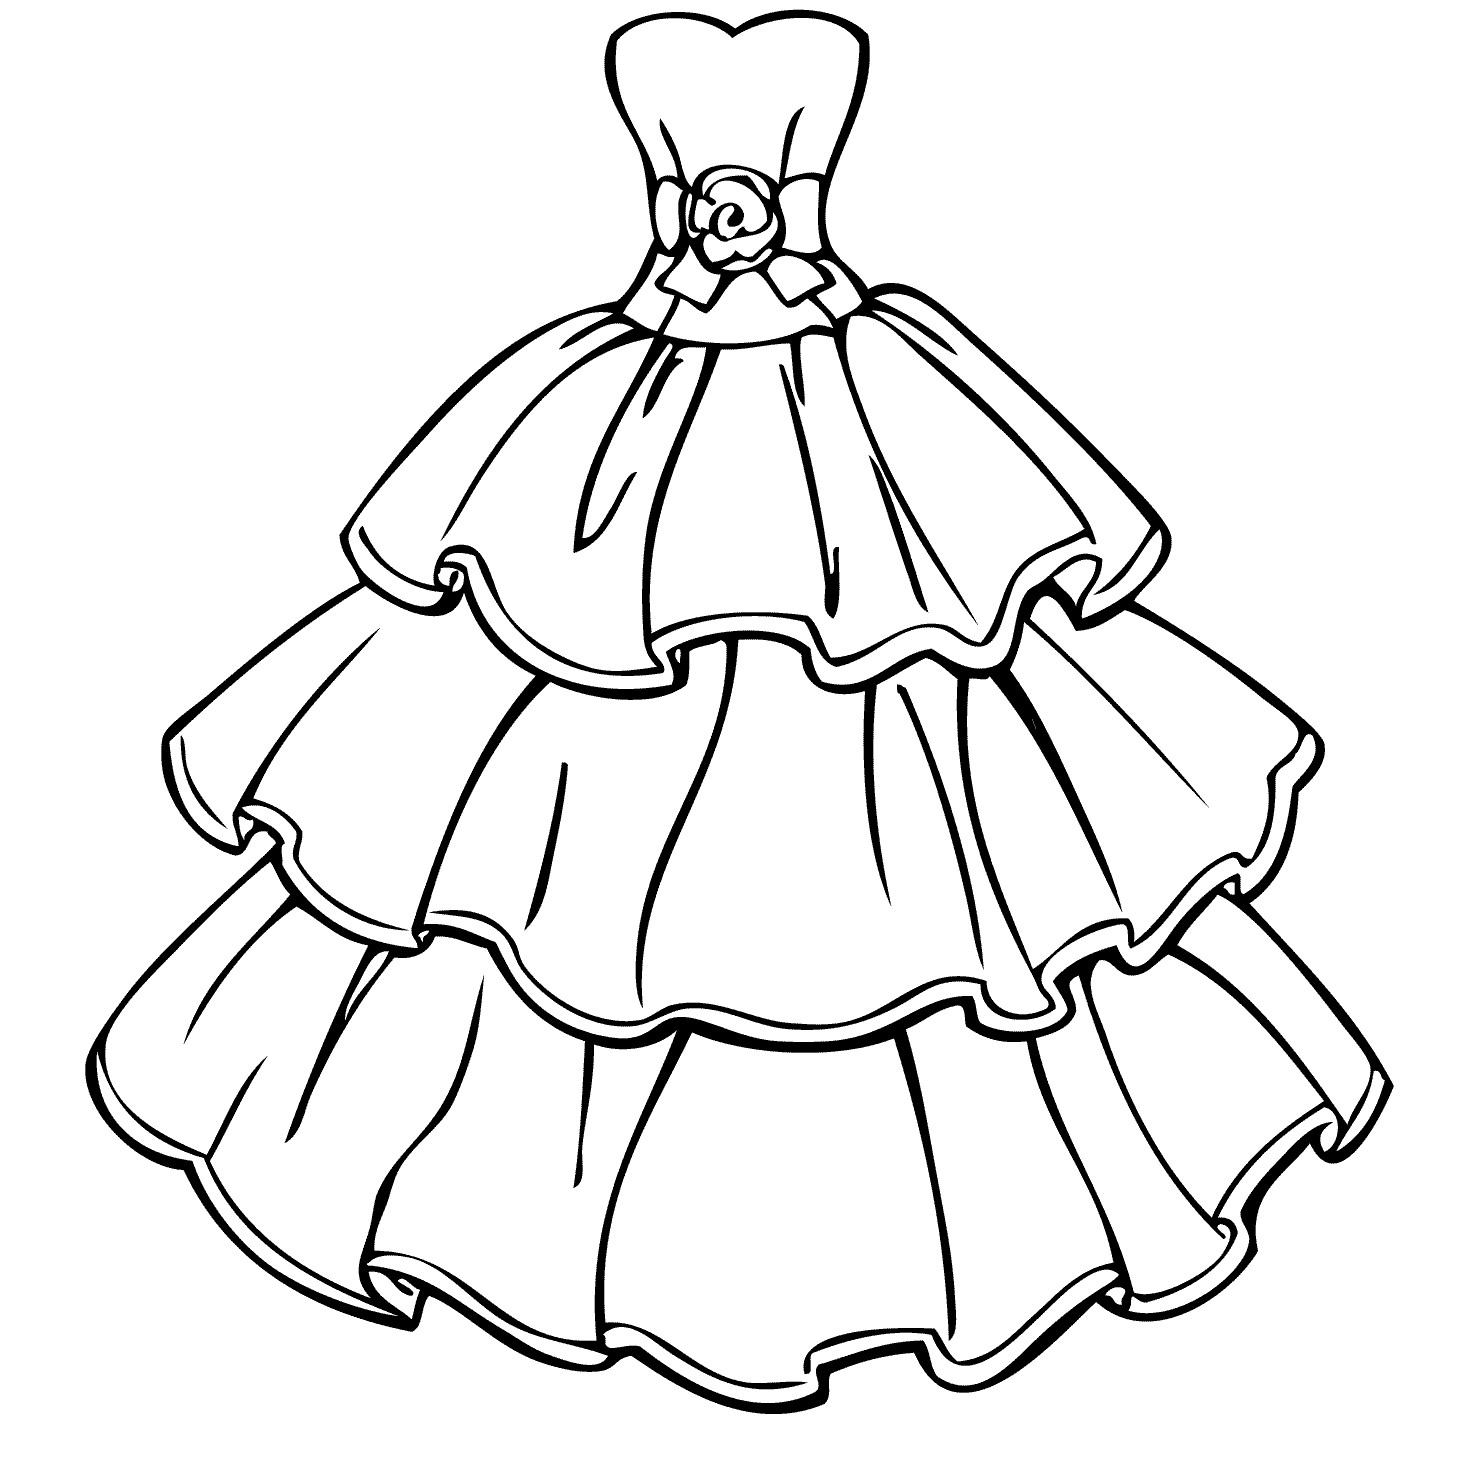 Dress coloring pages to download and print for free Coloring book for 5 year olds